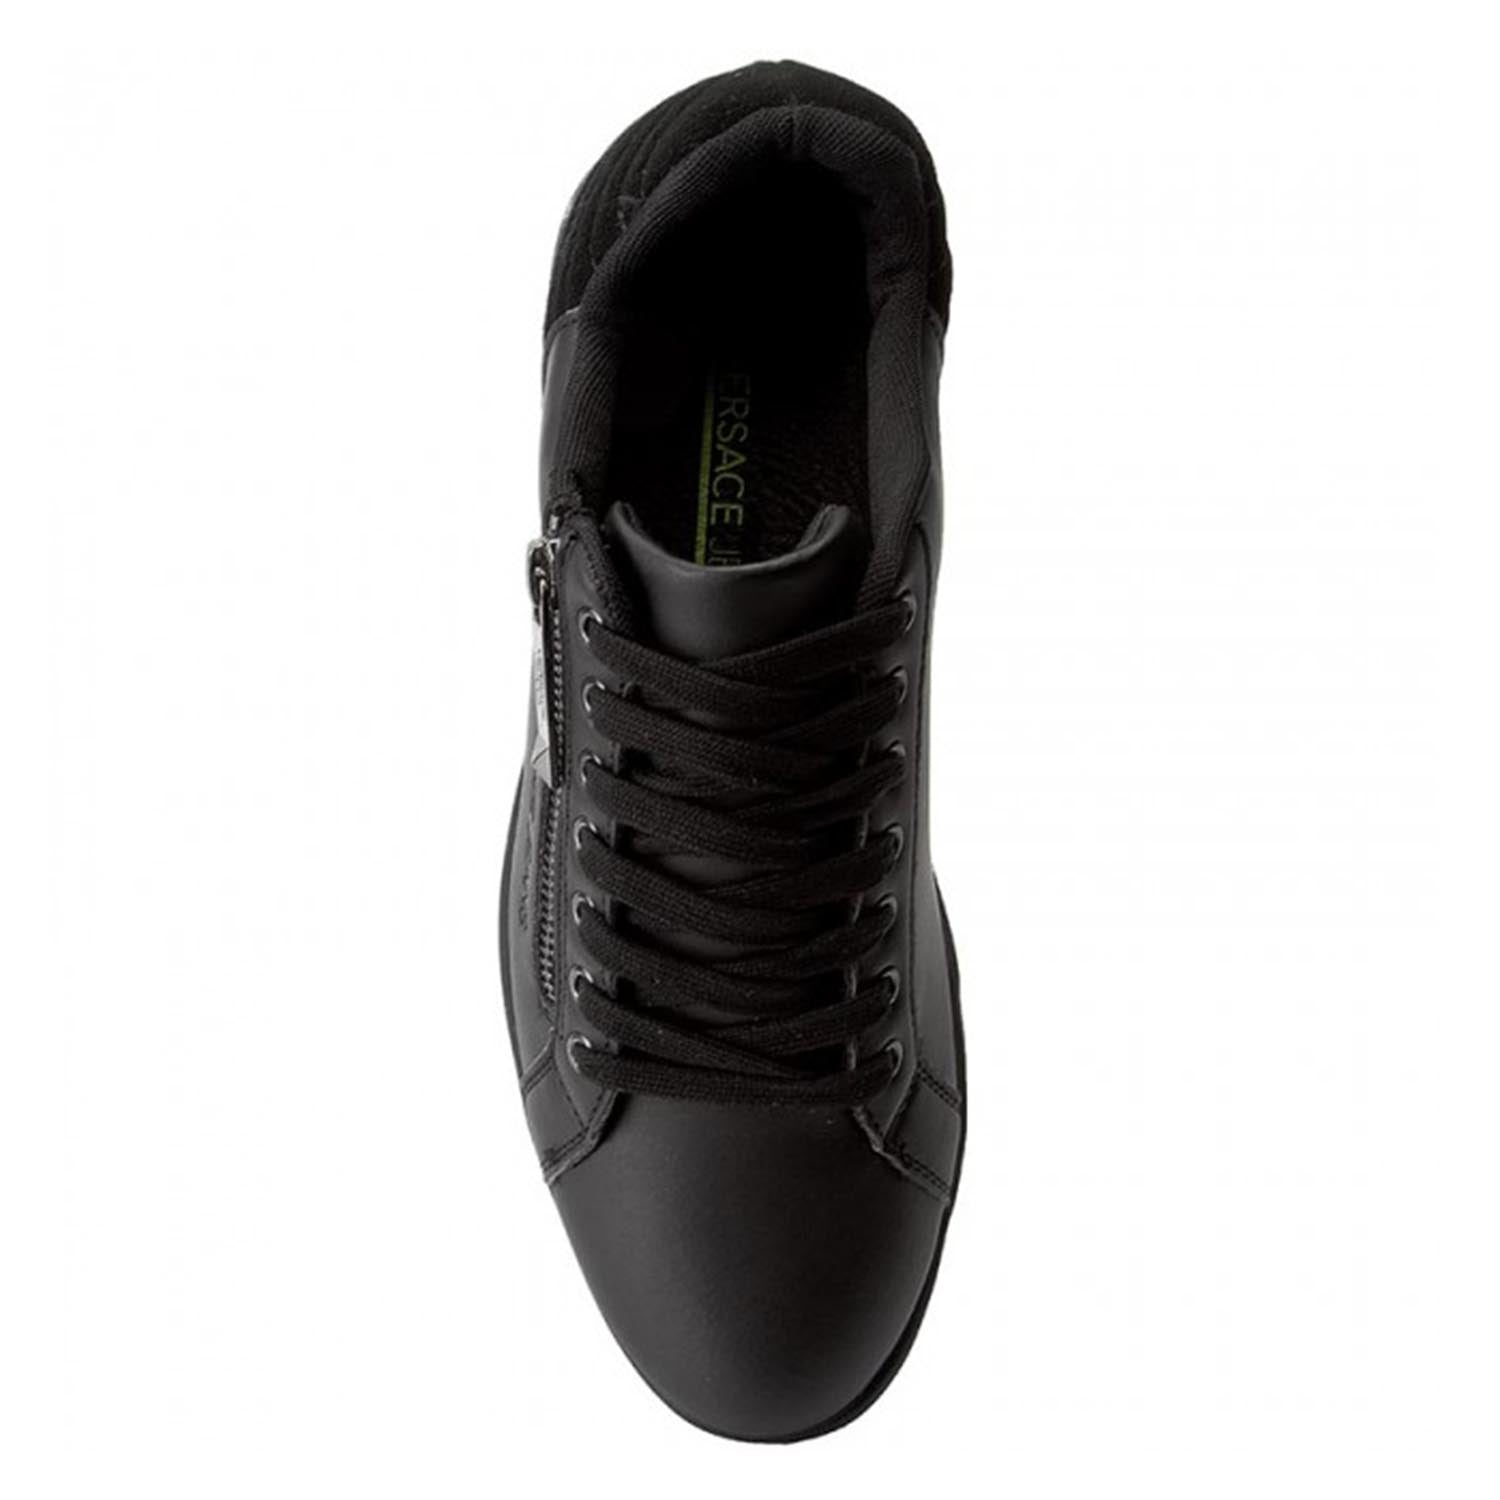 Versace Jeans Zip Detail Suede Leather Trainer